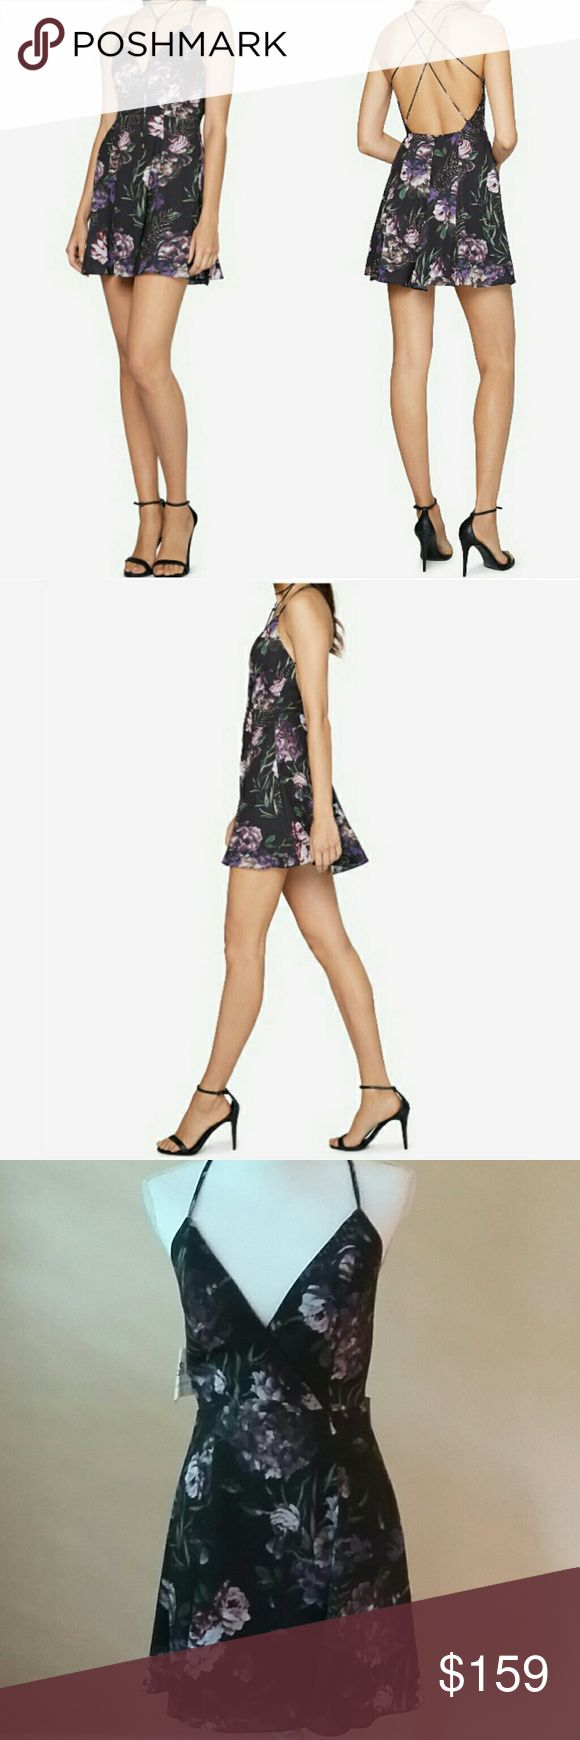 """🆕Fame and Partners Floral Neckline Gown A metal-tipped necktie echoes the delicate crisscrossing straps of this v-neckline mini dress, styled in a floral pattern with a fit-and-flare silhouette for movement. Hidden zipper with hook-and-eye closure.  Multiple spaghetti straps with open back.? Necklace tie.Fit-and-flare silhouette. Lined. Hits above knee. Approximate measurements: 18"""" skirt length, 28"""" waist.? Material:shell and lining: polyester heavy georgette; trim: nylon. Fame and…"""